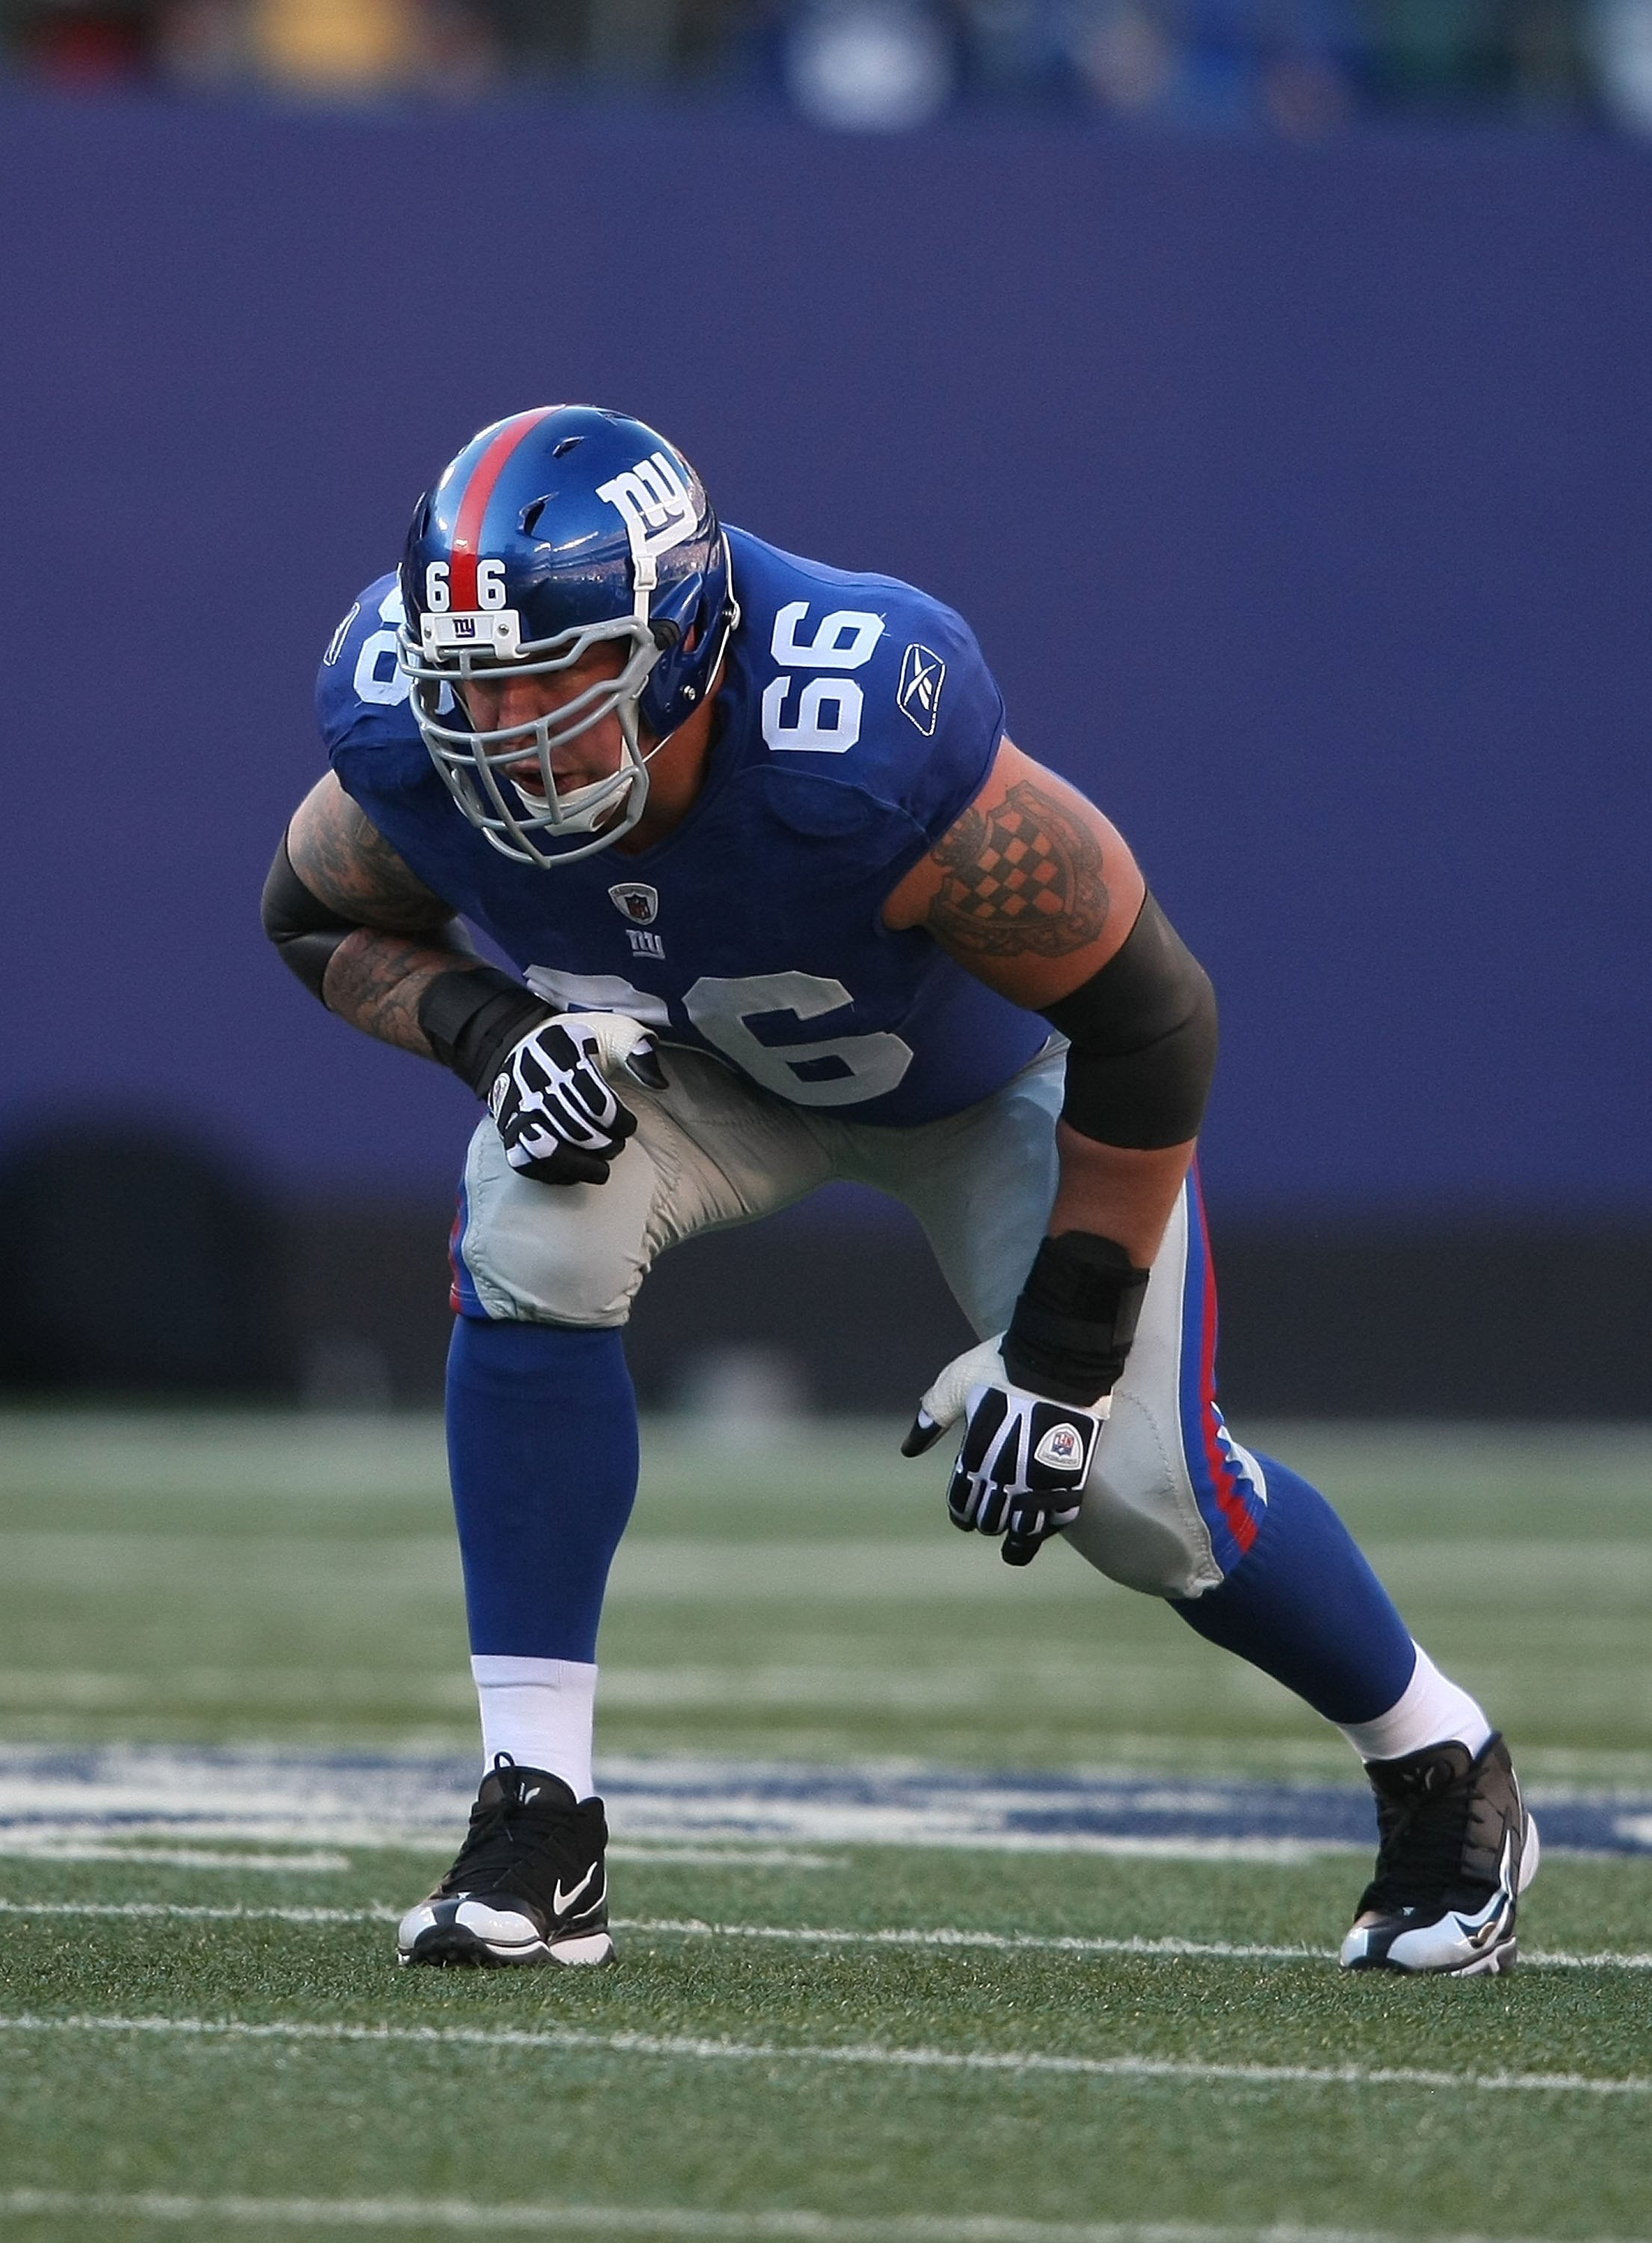 EAST RUTHERFORD, NJ - DECEMBER 27:  David Diehl #66 of the New York Giants against the Carolina Panthers at Giants Stadium on December 27, 2009 in East Rutherford, New Jersey.  (Photo by Nick Laham/Getty Images)